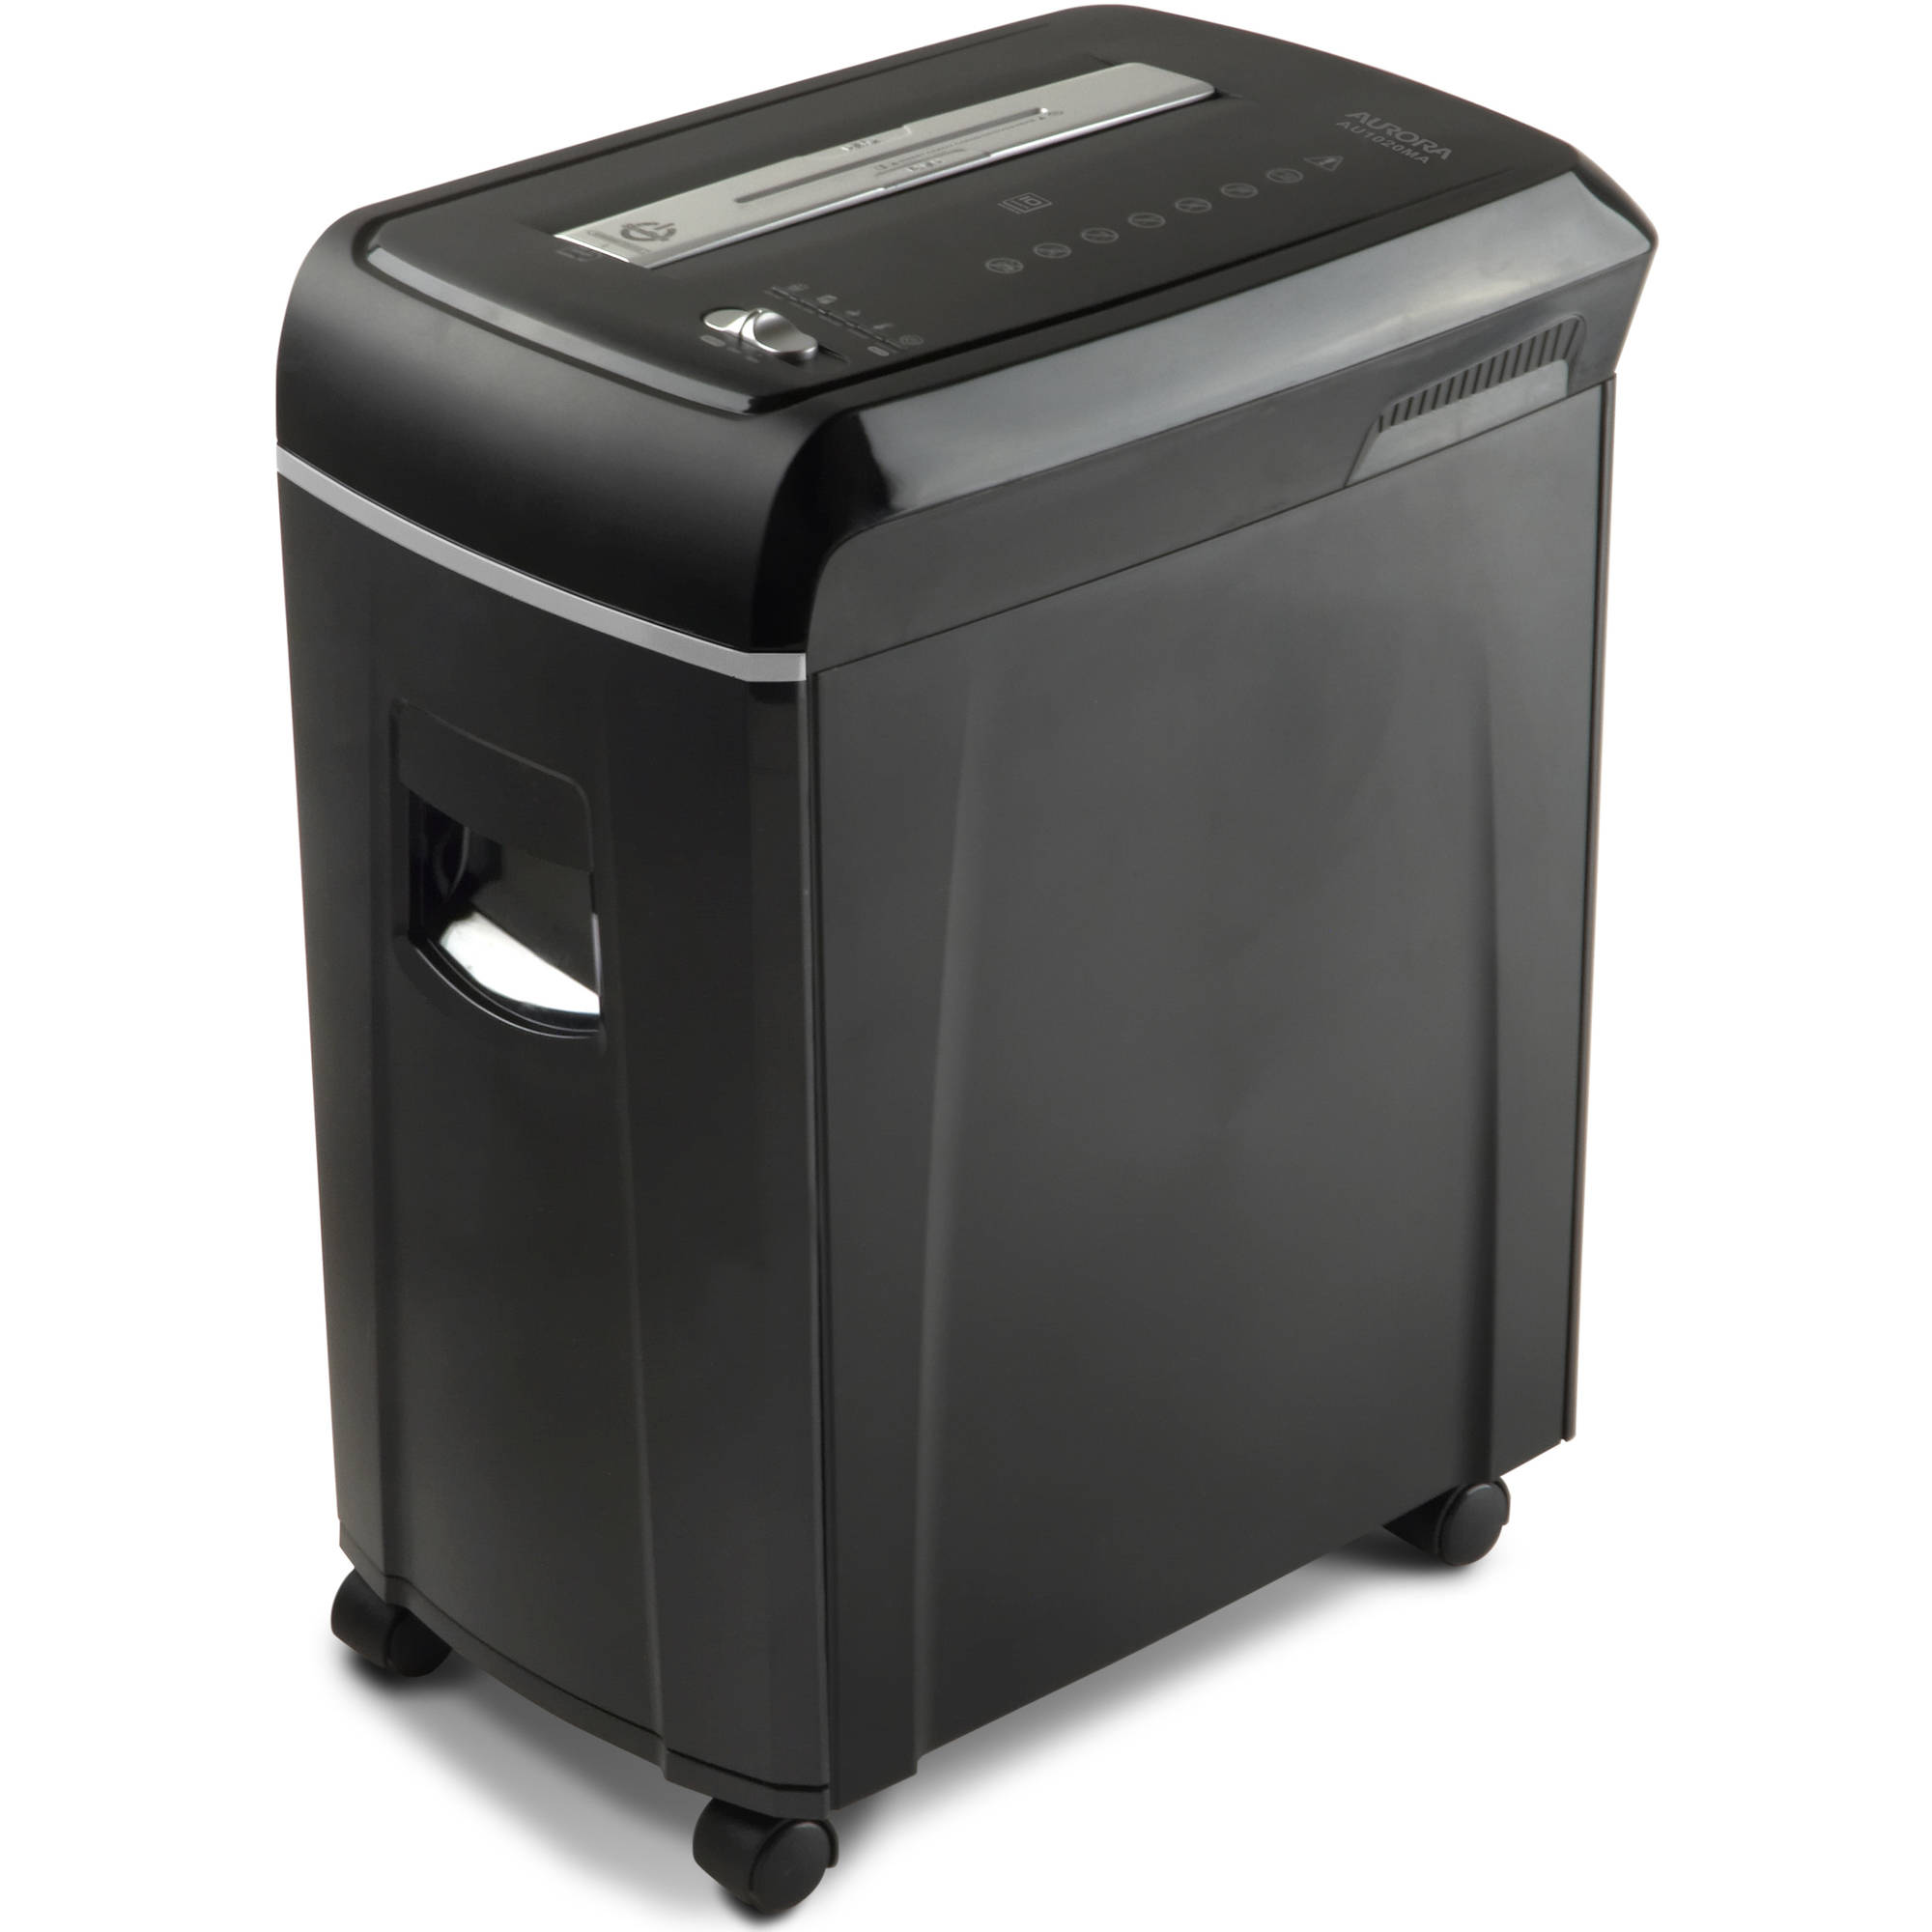 Aurora High-Security 10-Sheet Micro-Cut Paper, CD and Credit Card Shredder with Pullout